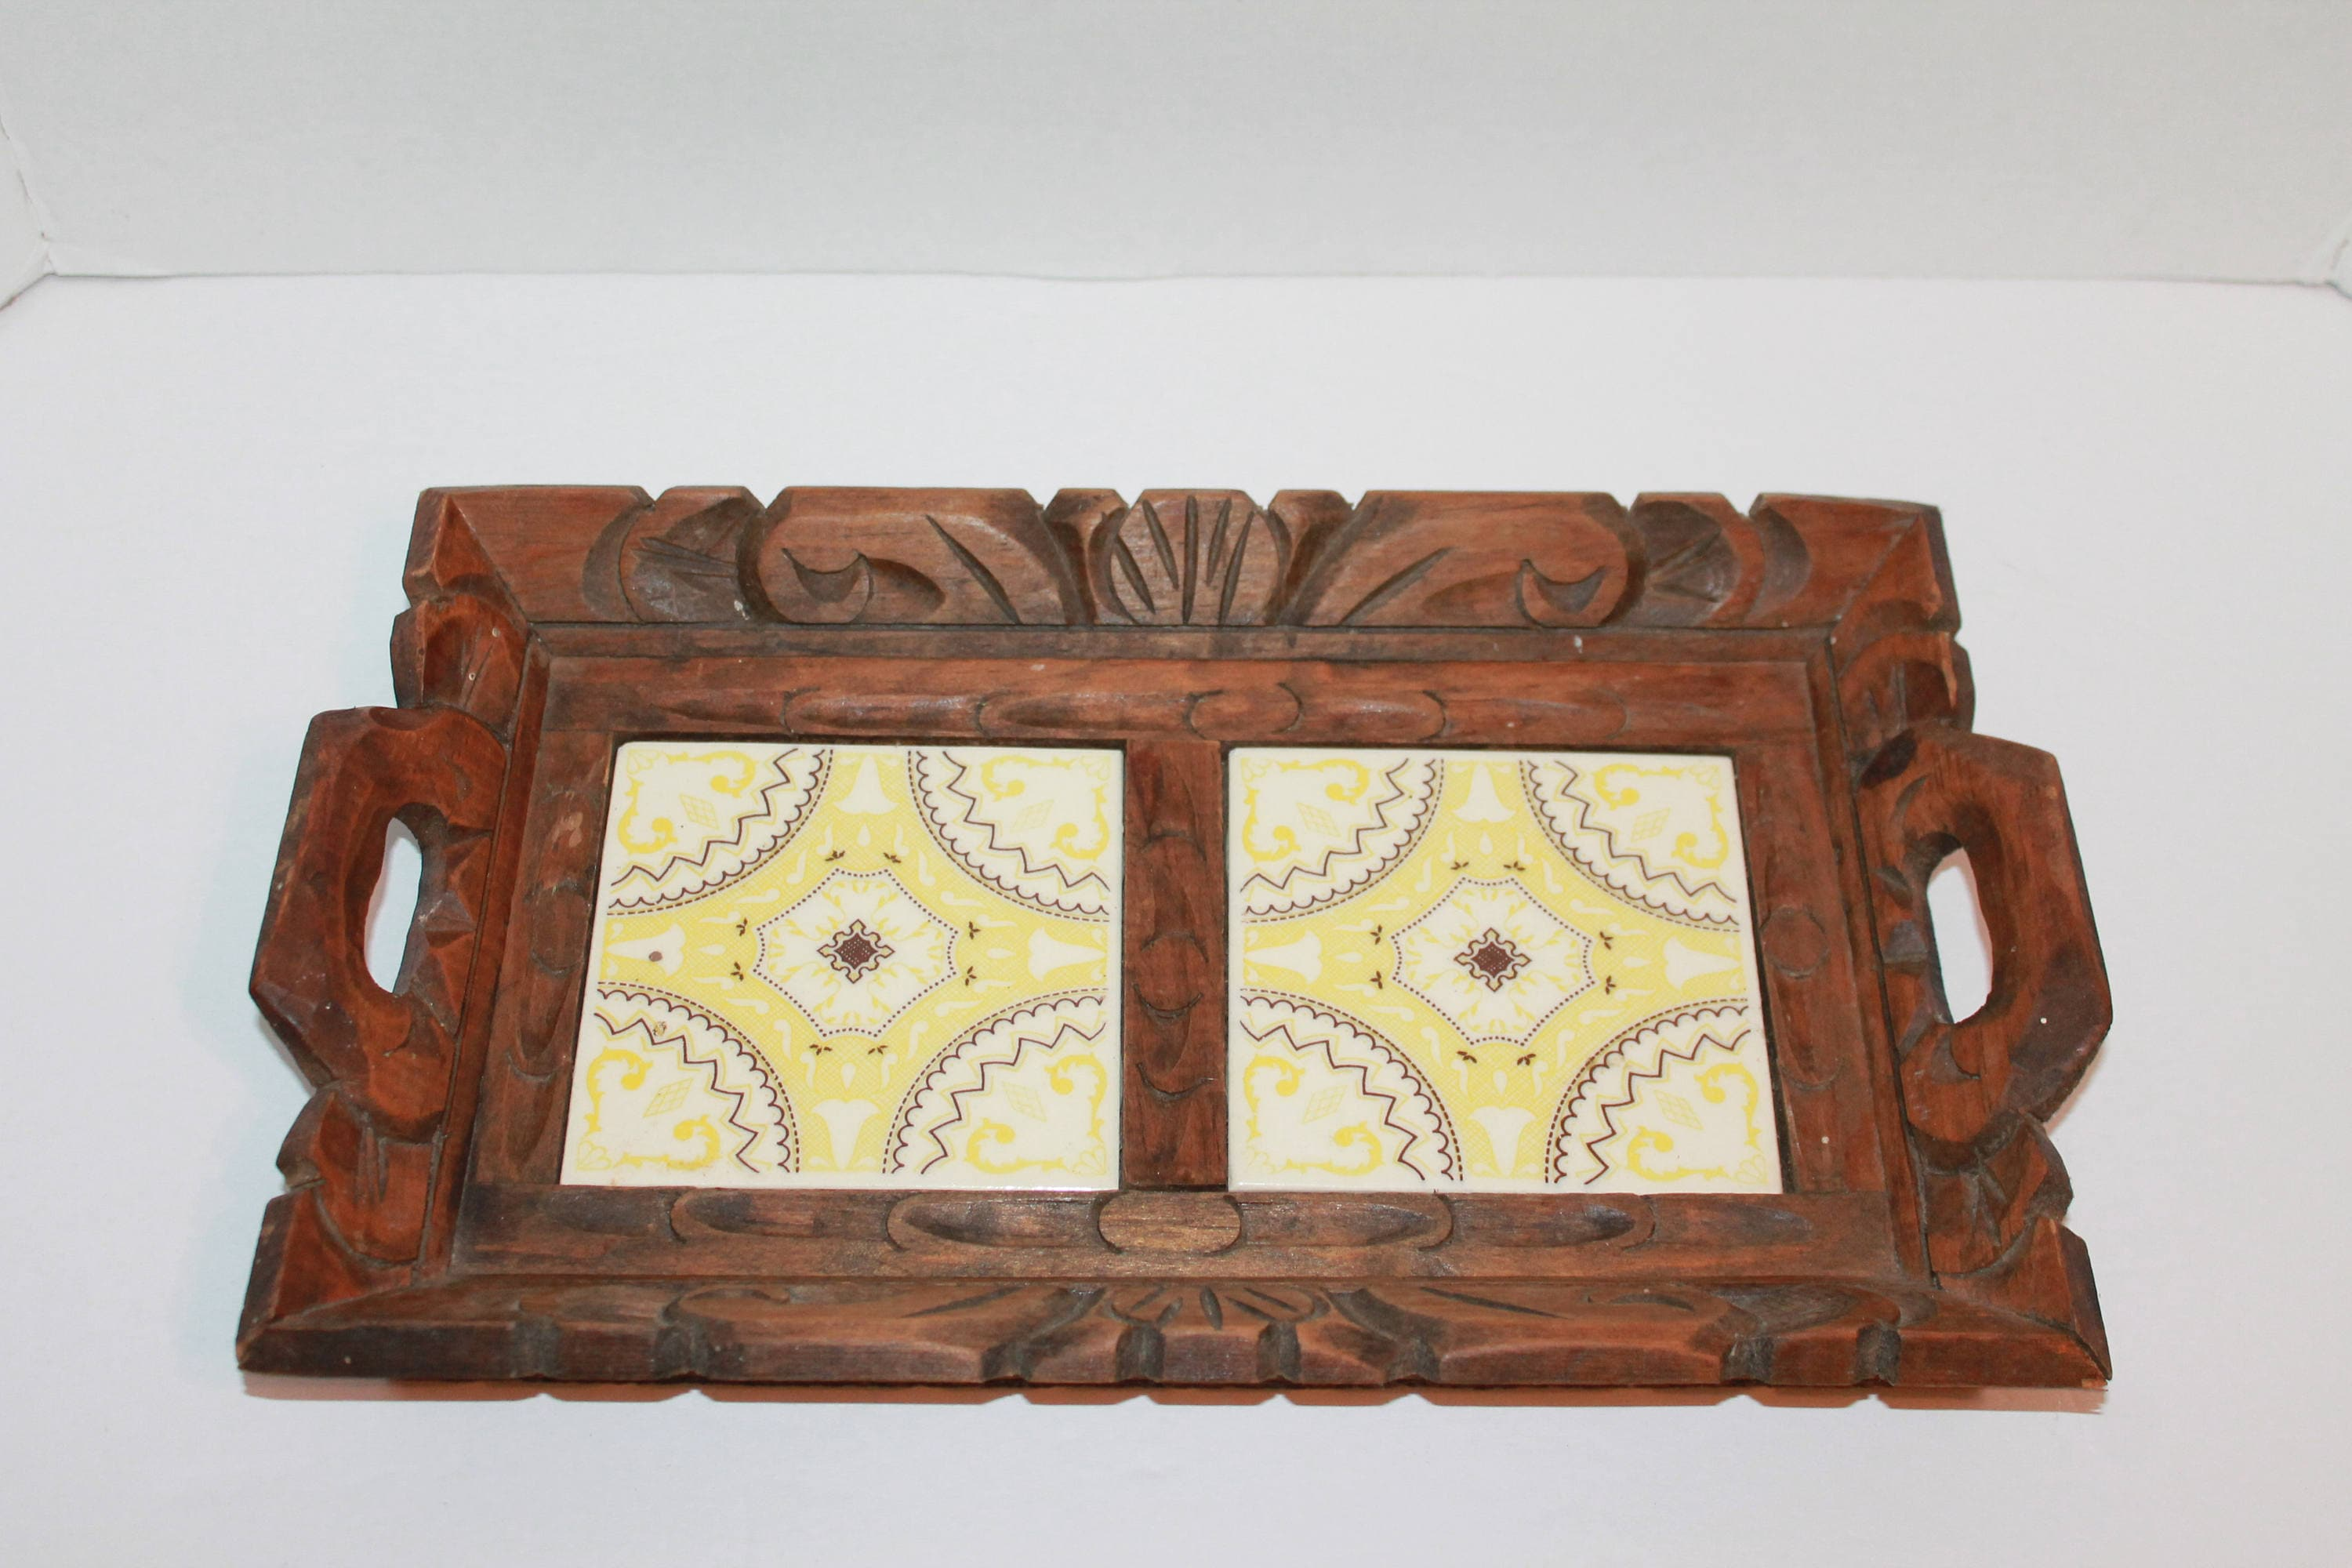 Vintage Hand Carved Wood And Tile Trivet Tray From Mexico, Vintage Serving  Tray